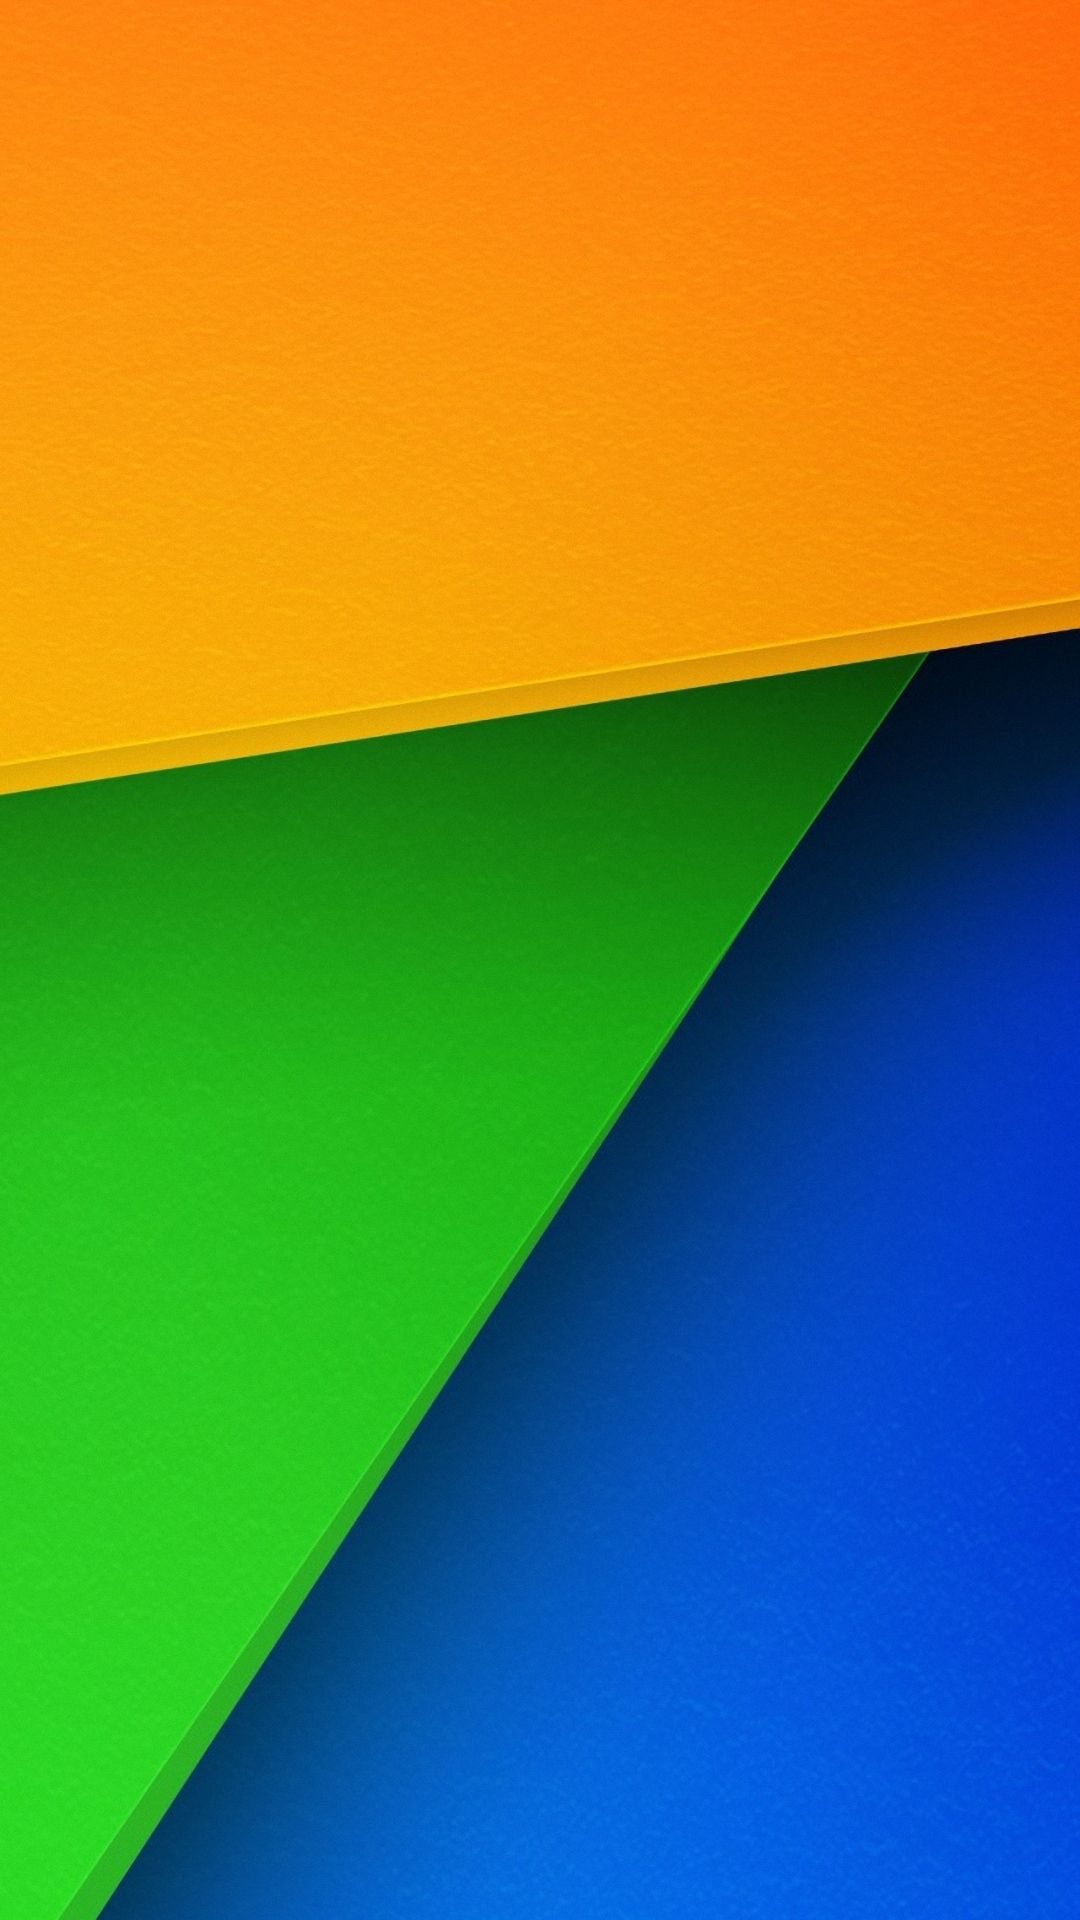 Geometry Color Block Samsung Galaxy A7 Wallpapers Hd   Phone 1080x1920